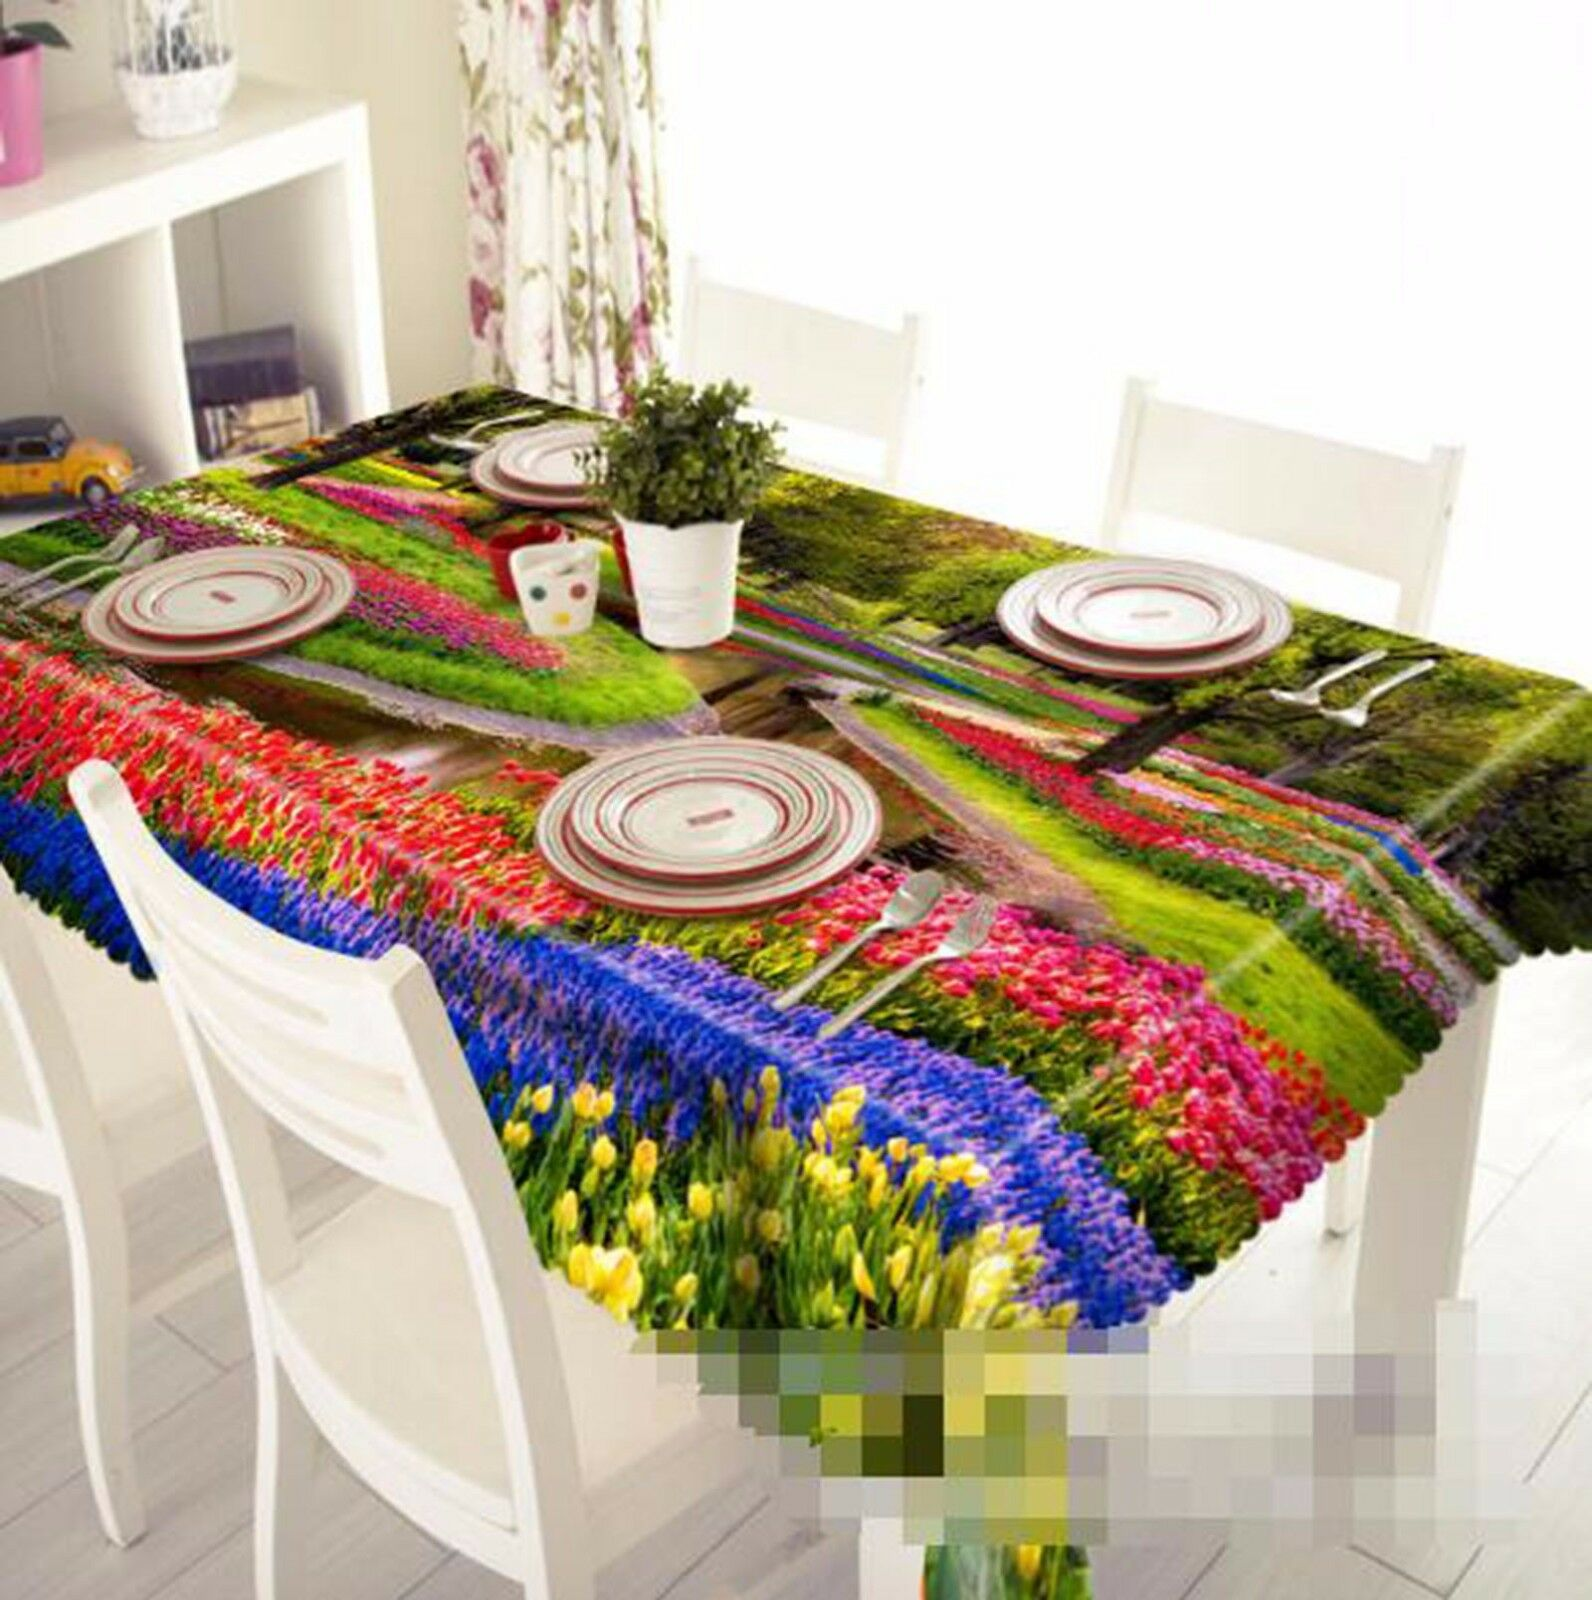 3D Parterre 5 Tablecloth Table Cover Cloth Birthday Party AJ WALLPAPER UK Lemon